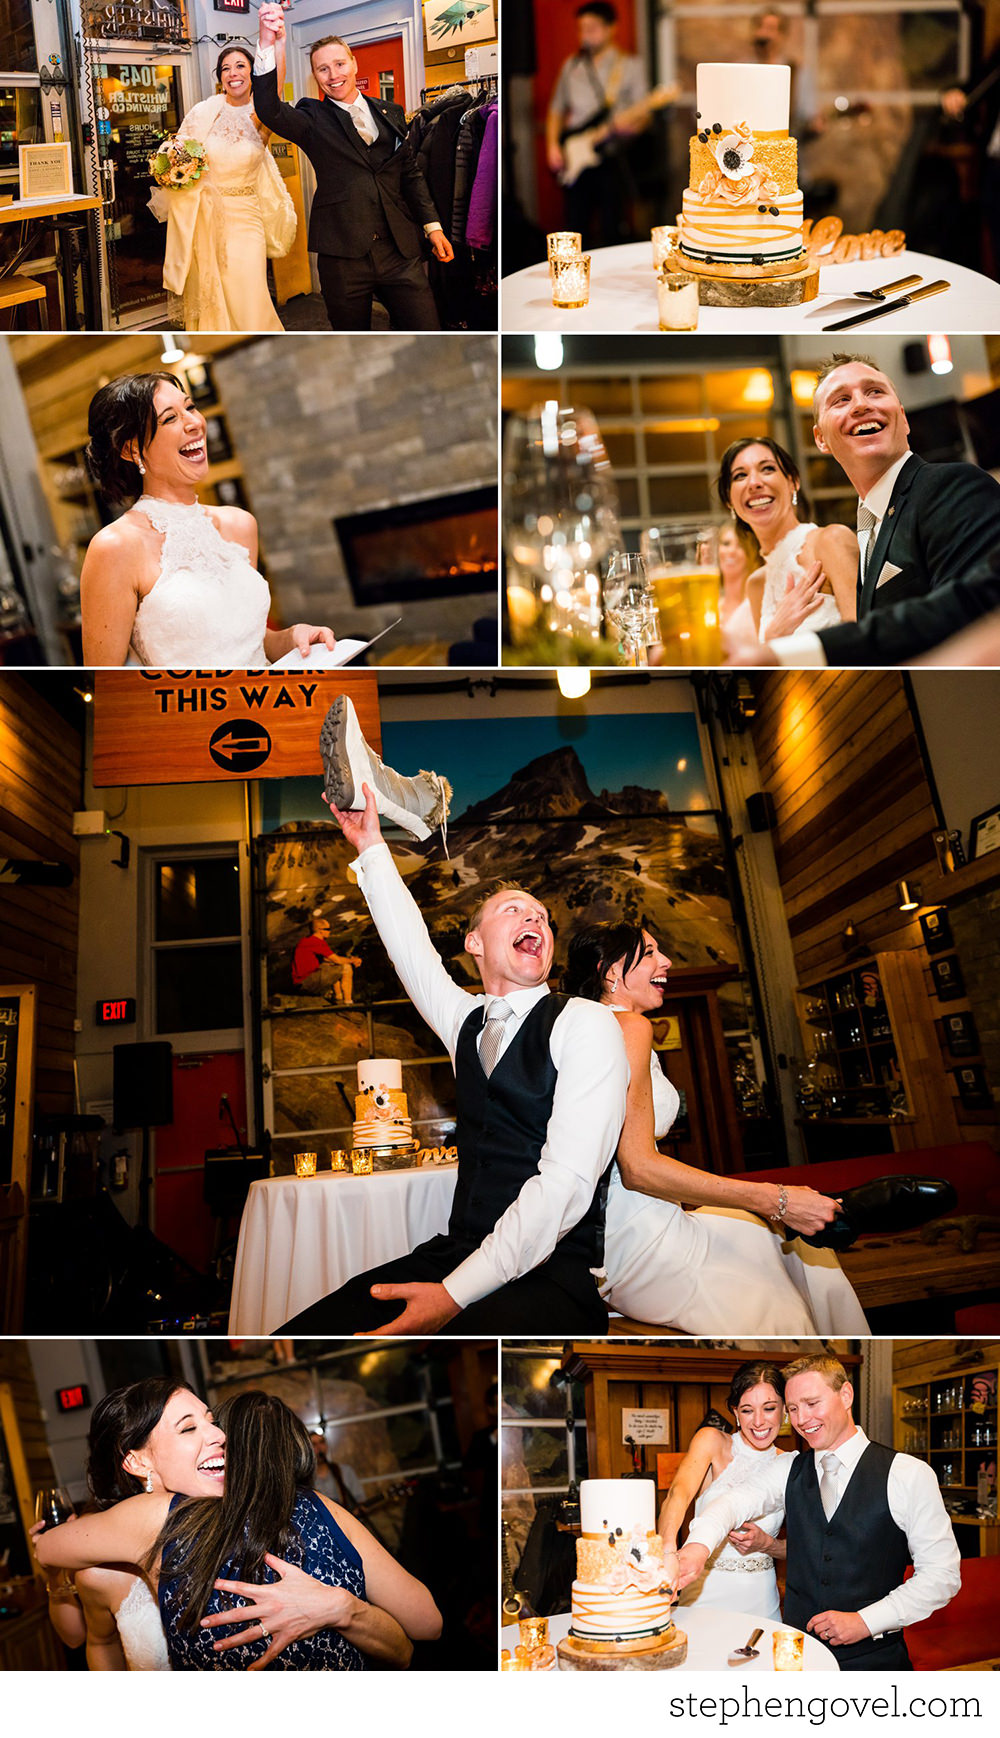 whistlerwinterwedding22.jpg